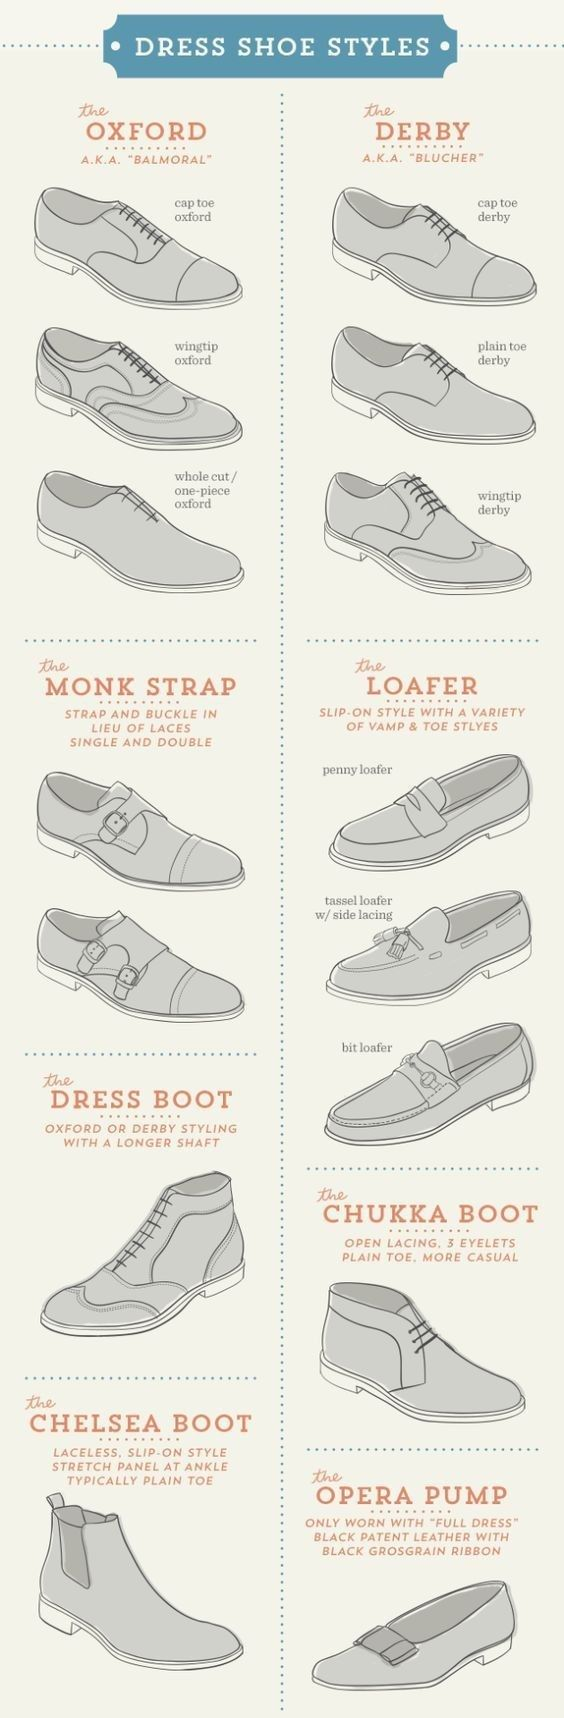 Get to know the basic dress shoe styles: